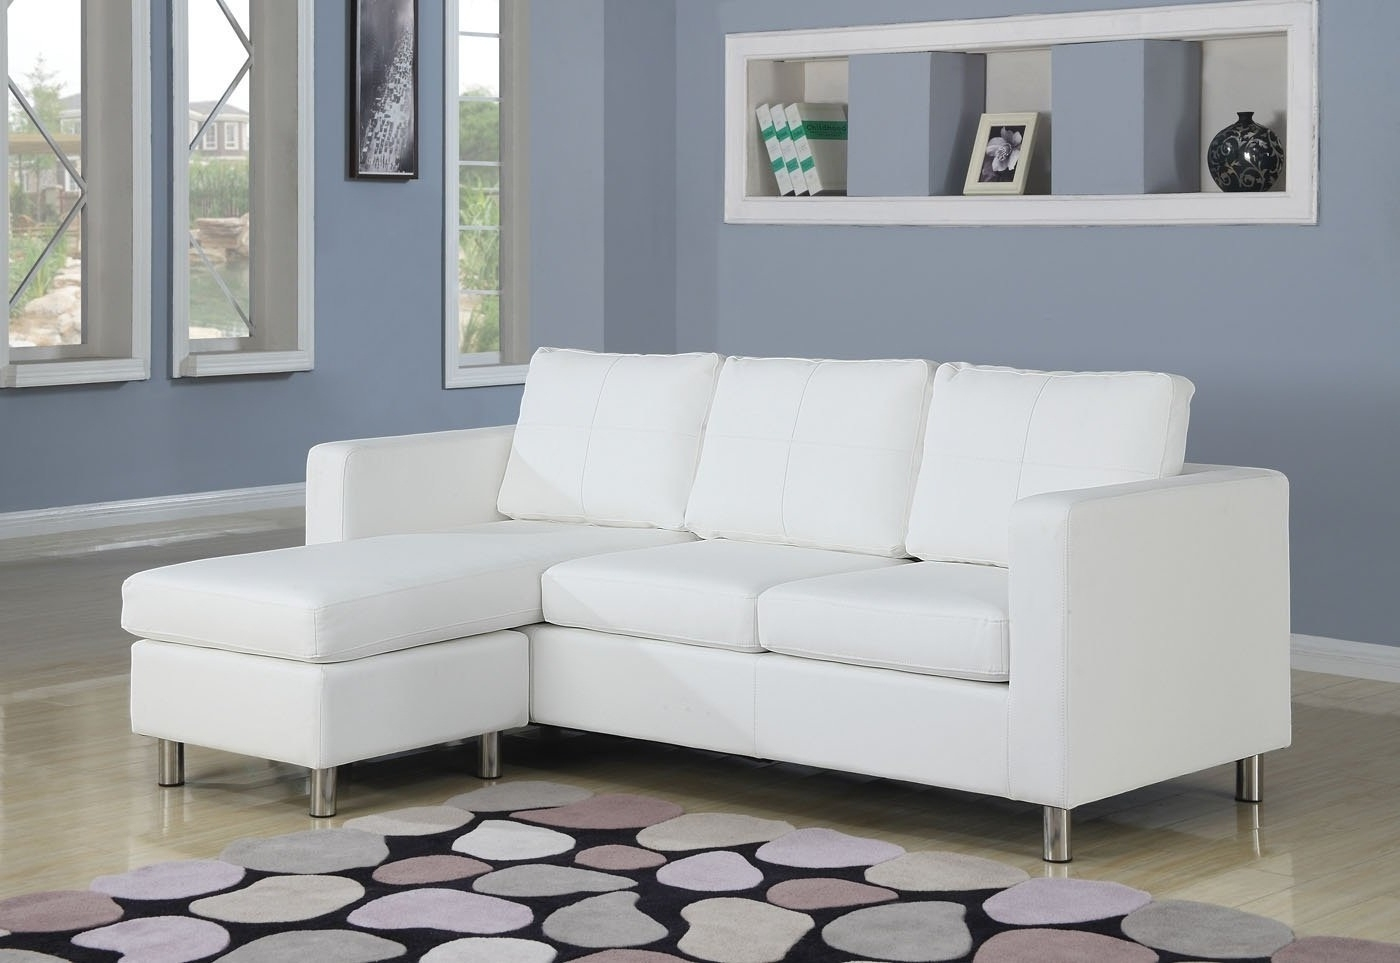 Tiny Sofas Throughout Well Liked Best Small Sectional Sofa With Chaise 49 On Sofas And Couches (View 4 of 20)